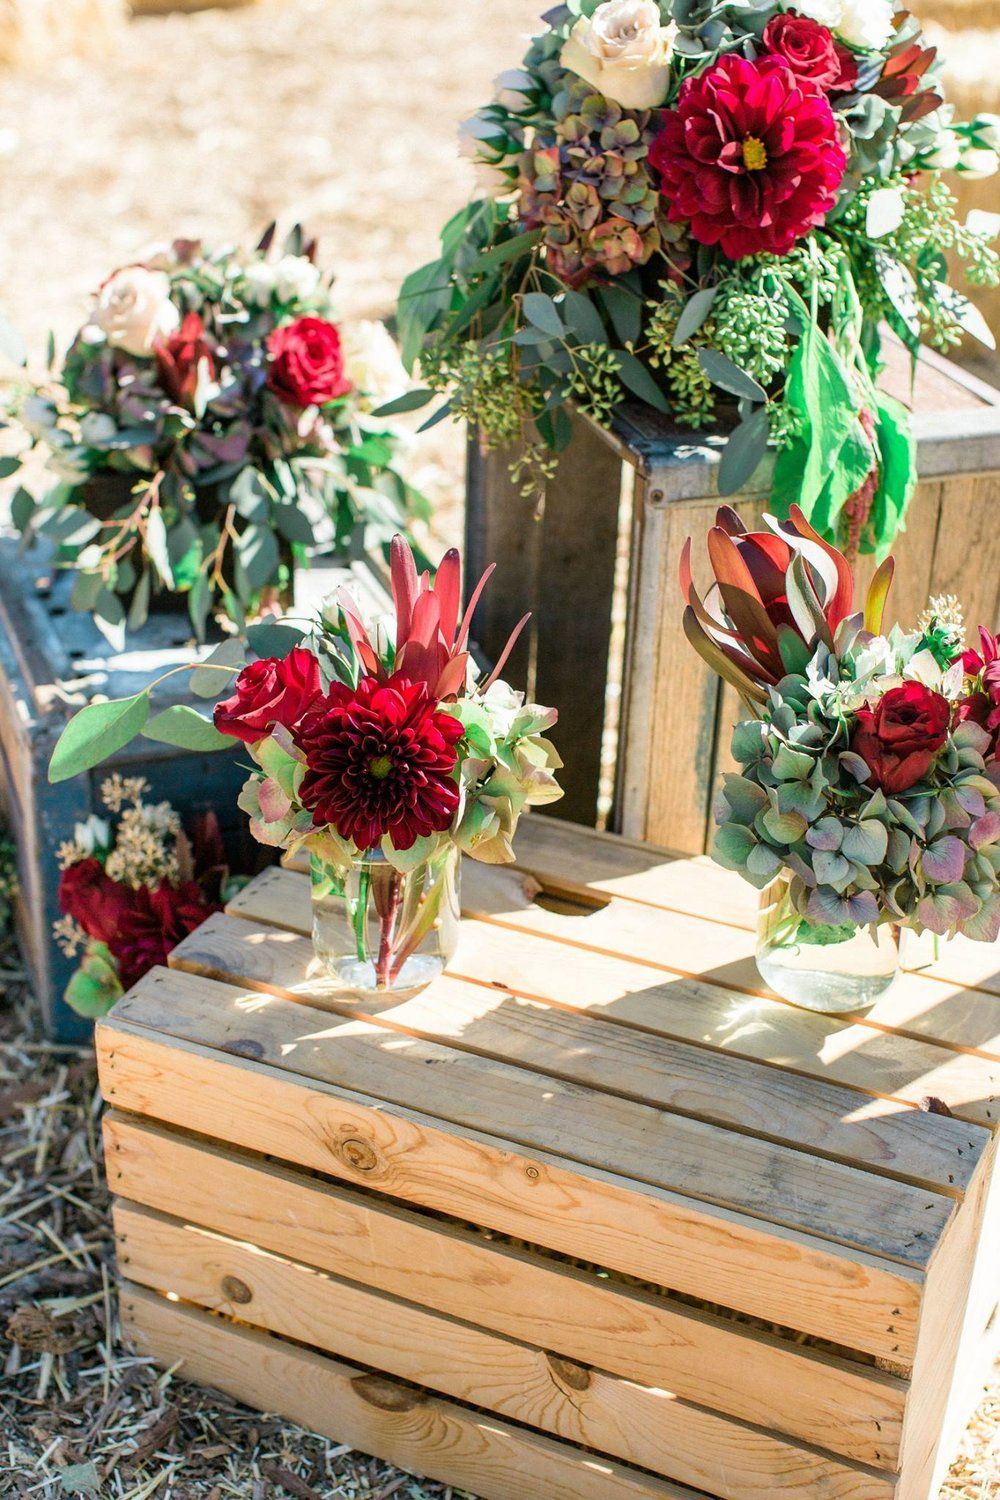 Pin On Rustic Romance Oso Ranch Flowers By Down Emery Lane